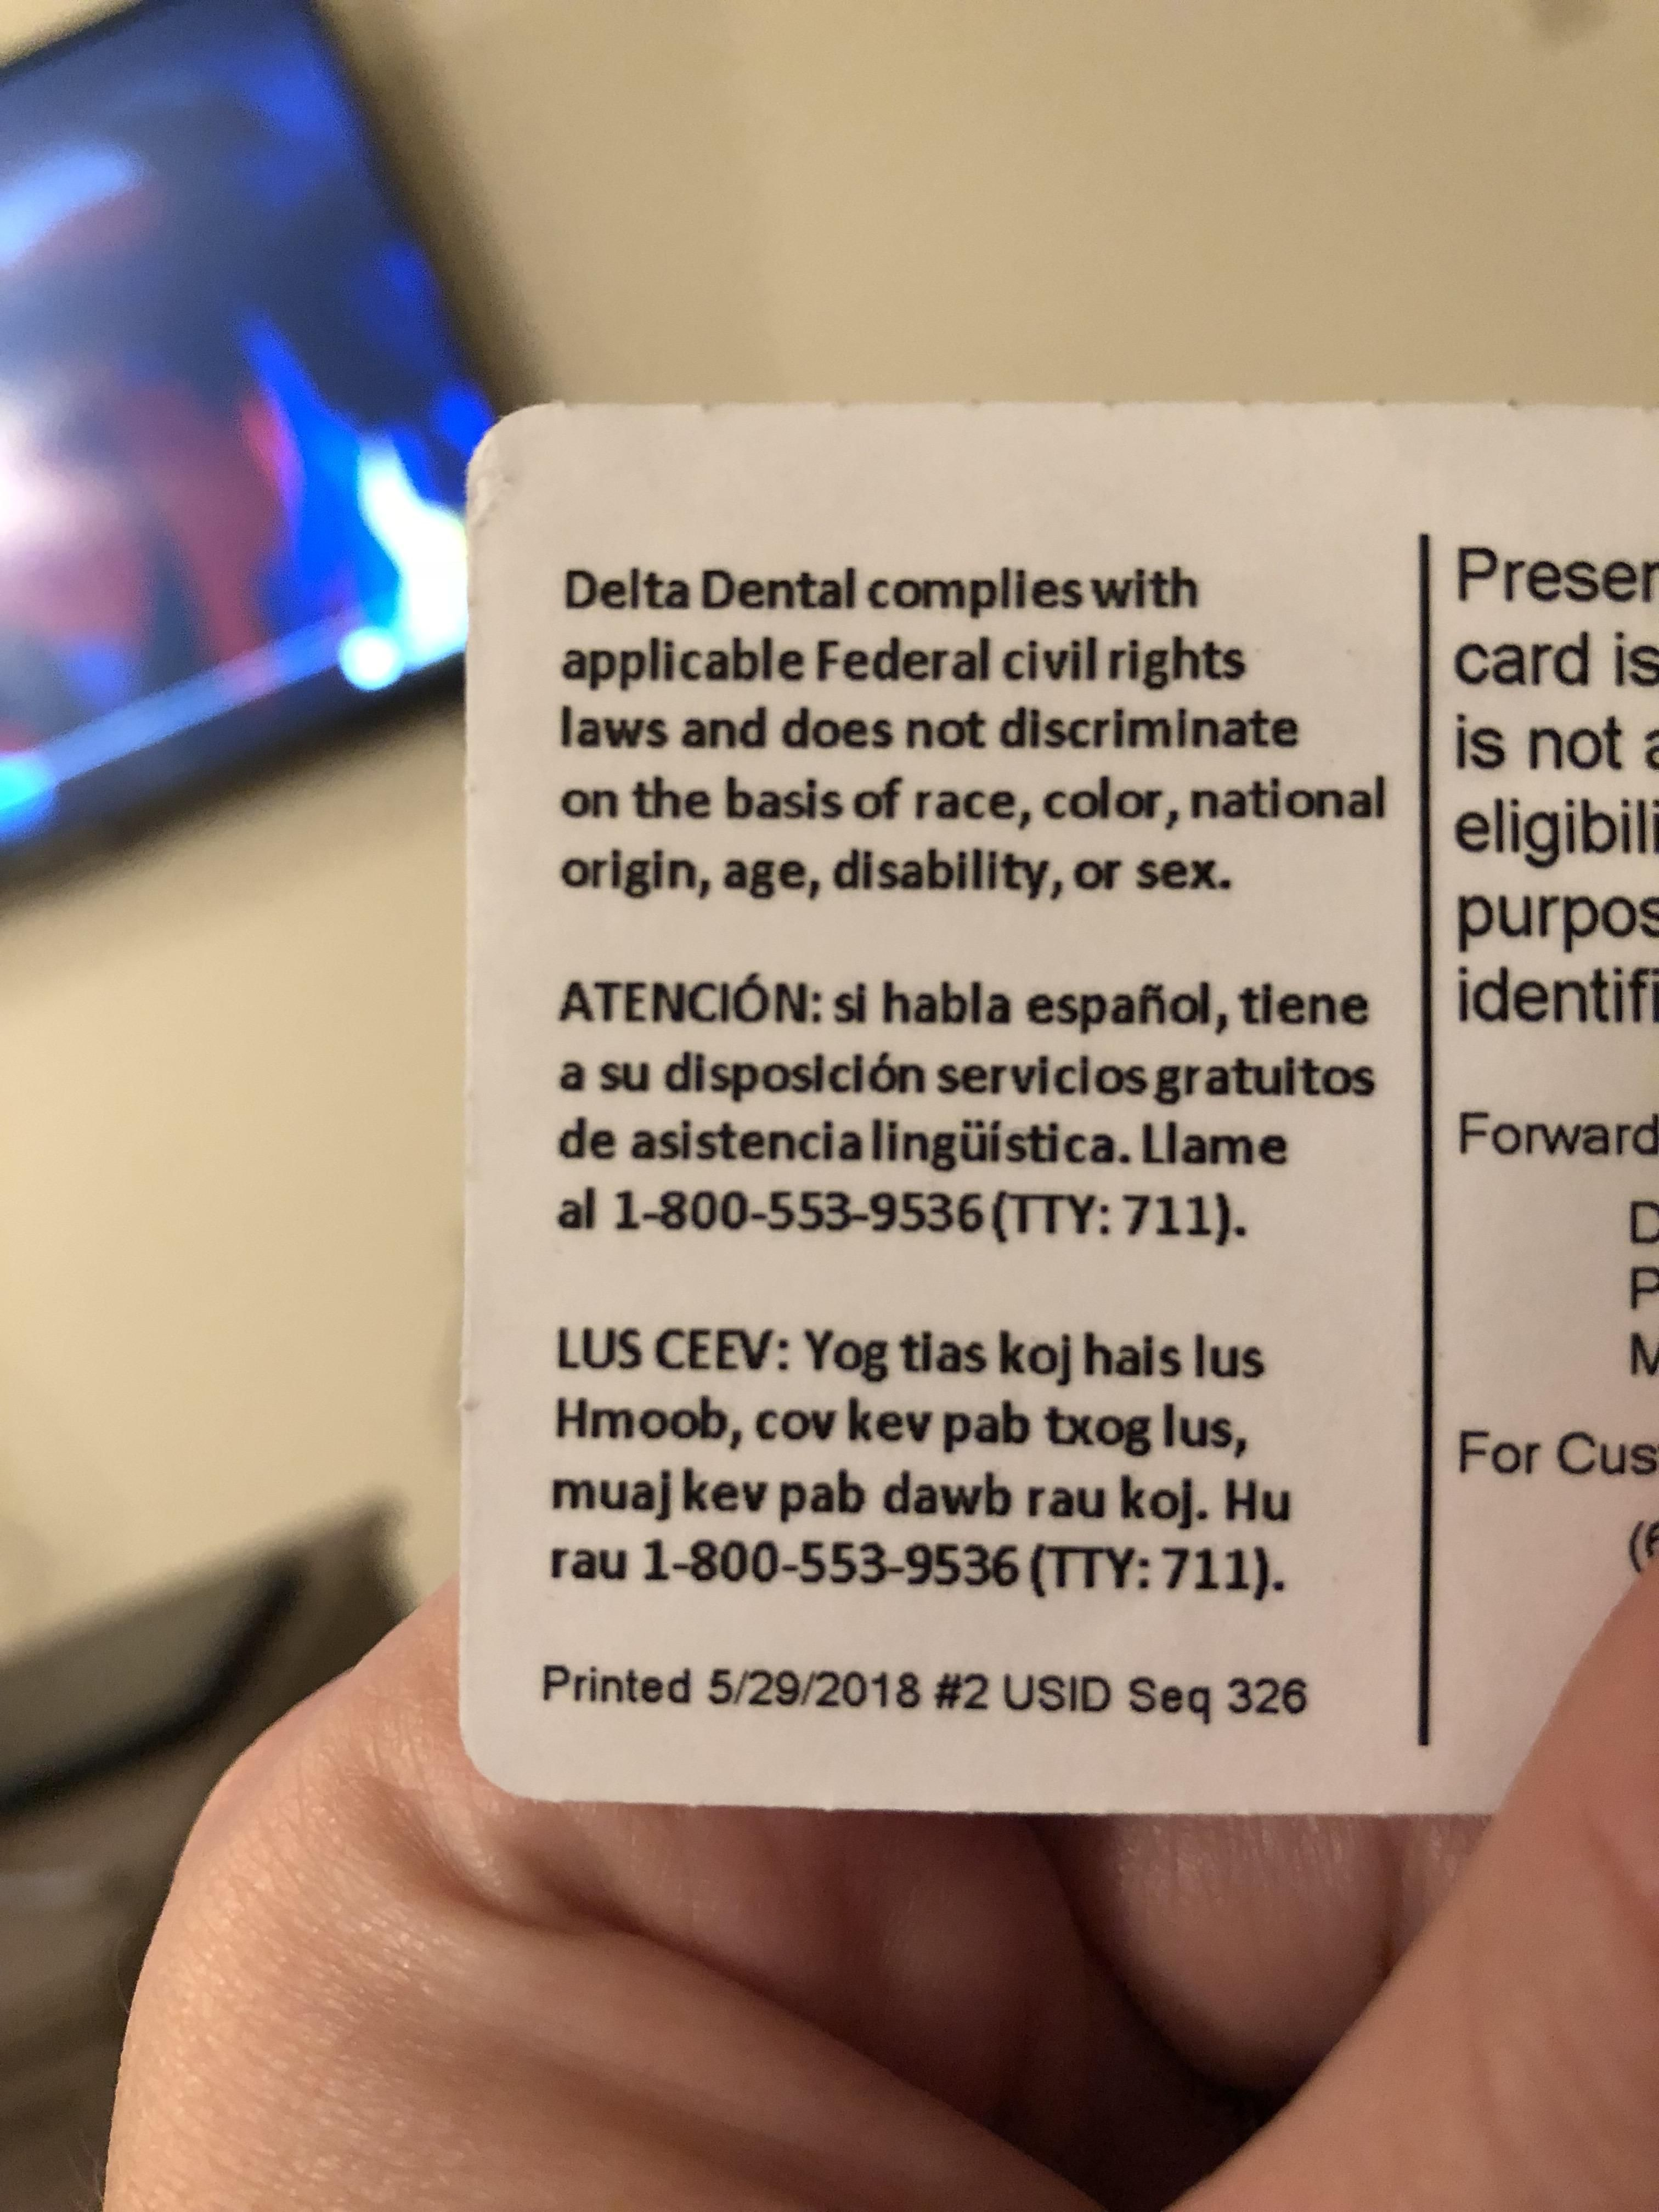 My Dental Insurance Card Has 3 Languages English Spanish And